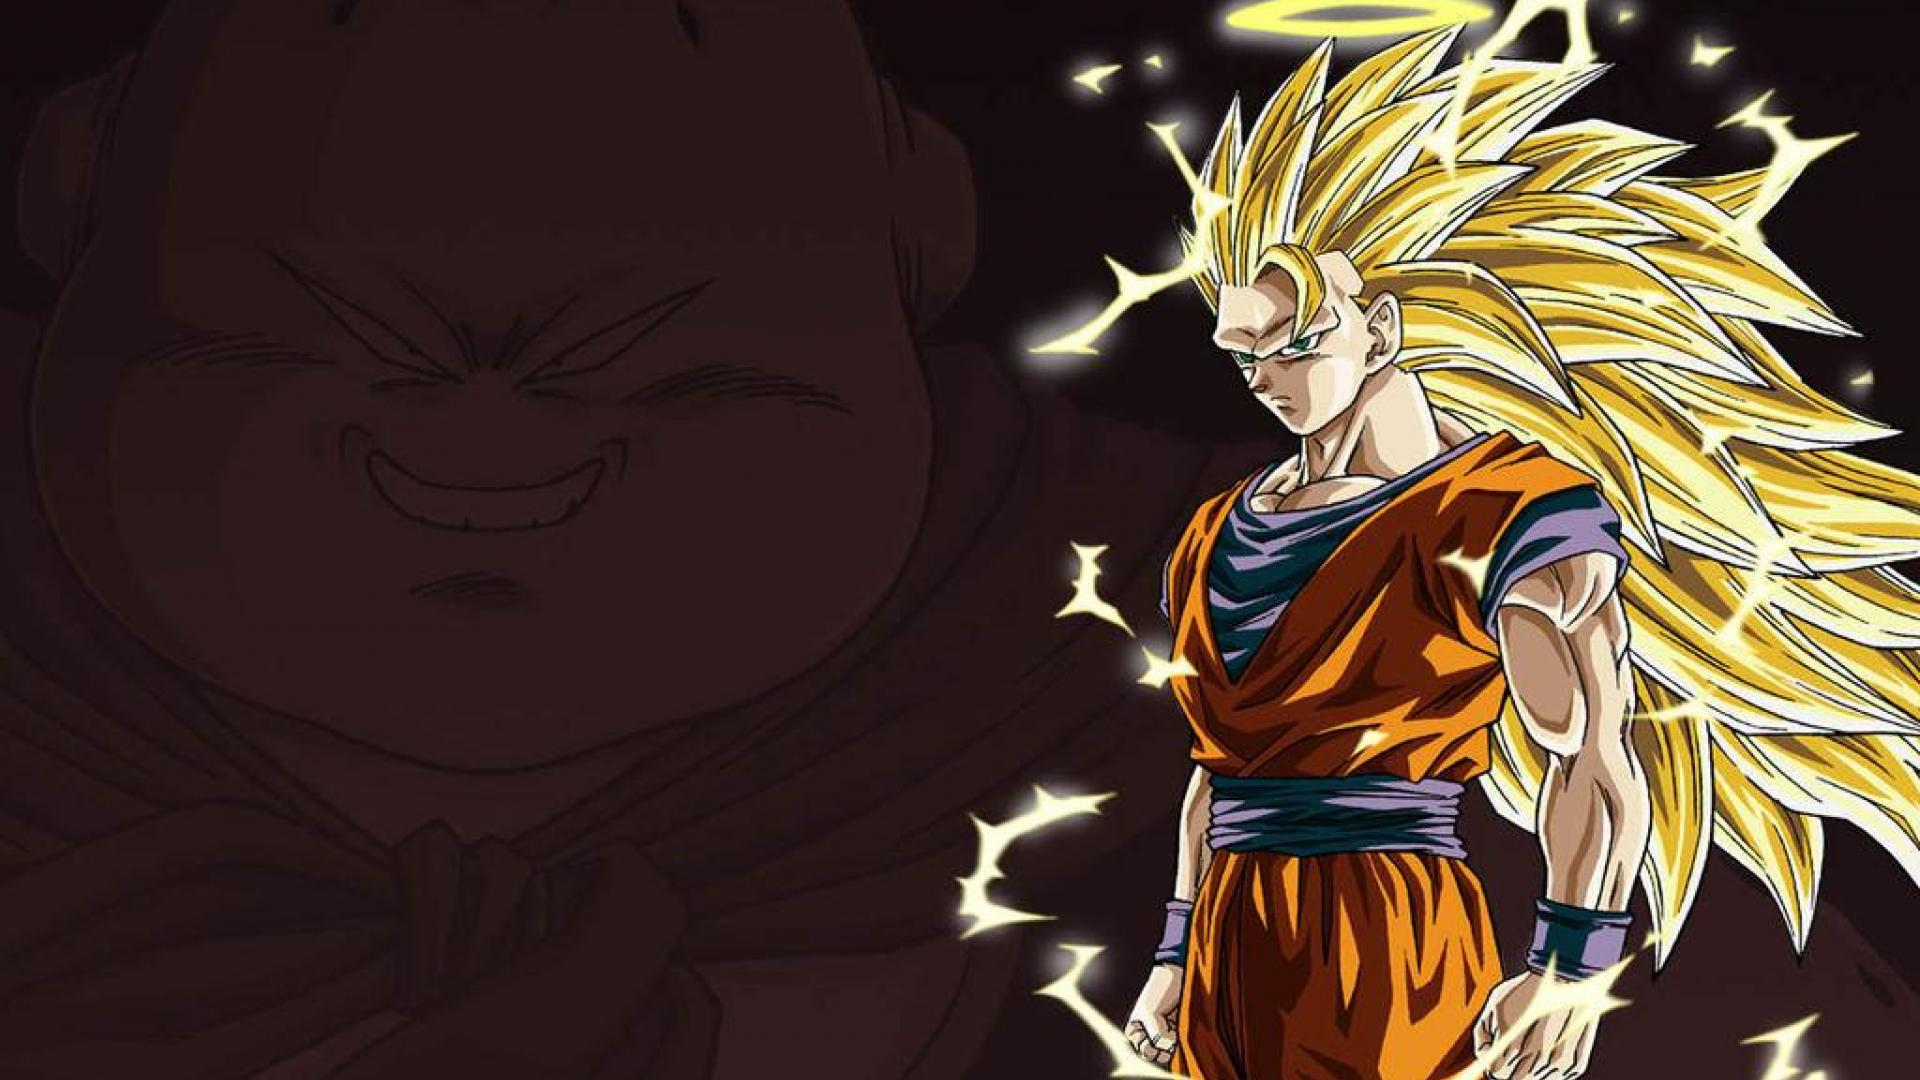 Wallpaper dragon ball z hd gratuit t l charger sur ngn mag for Fond ecran dbz